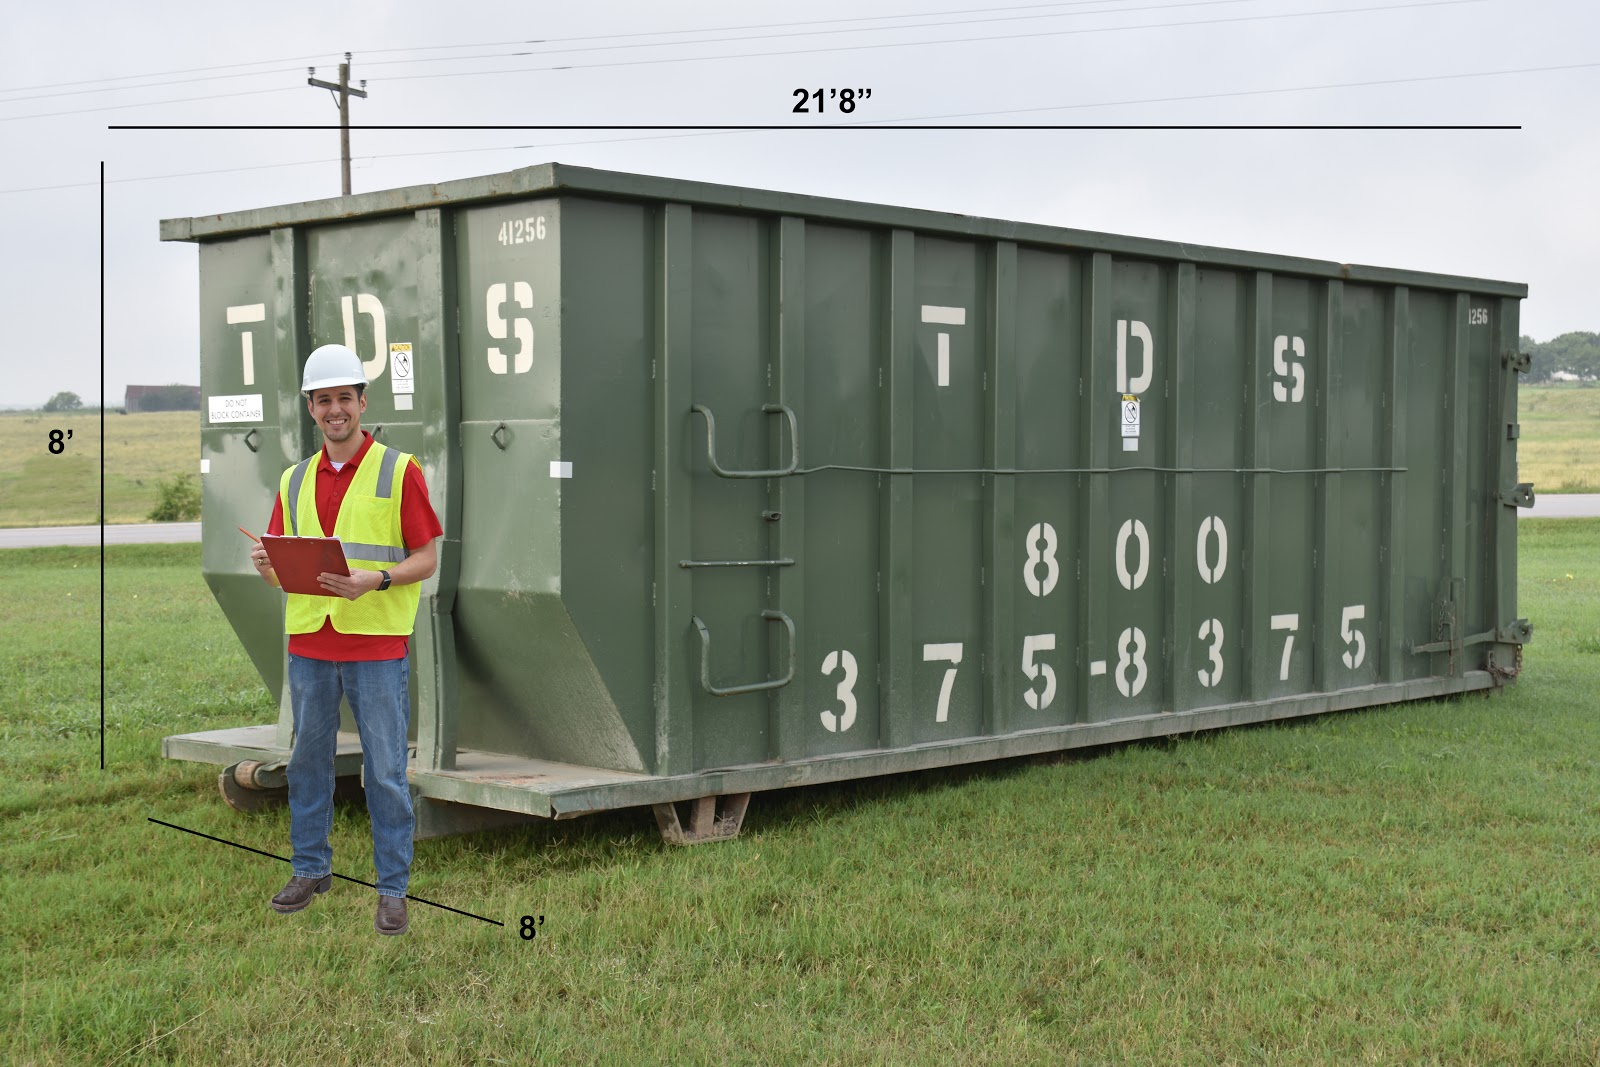 40-yard dumpster rental dimensions